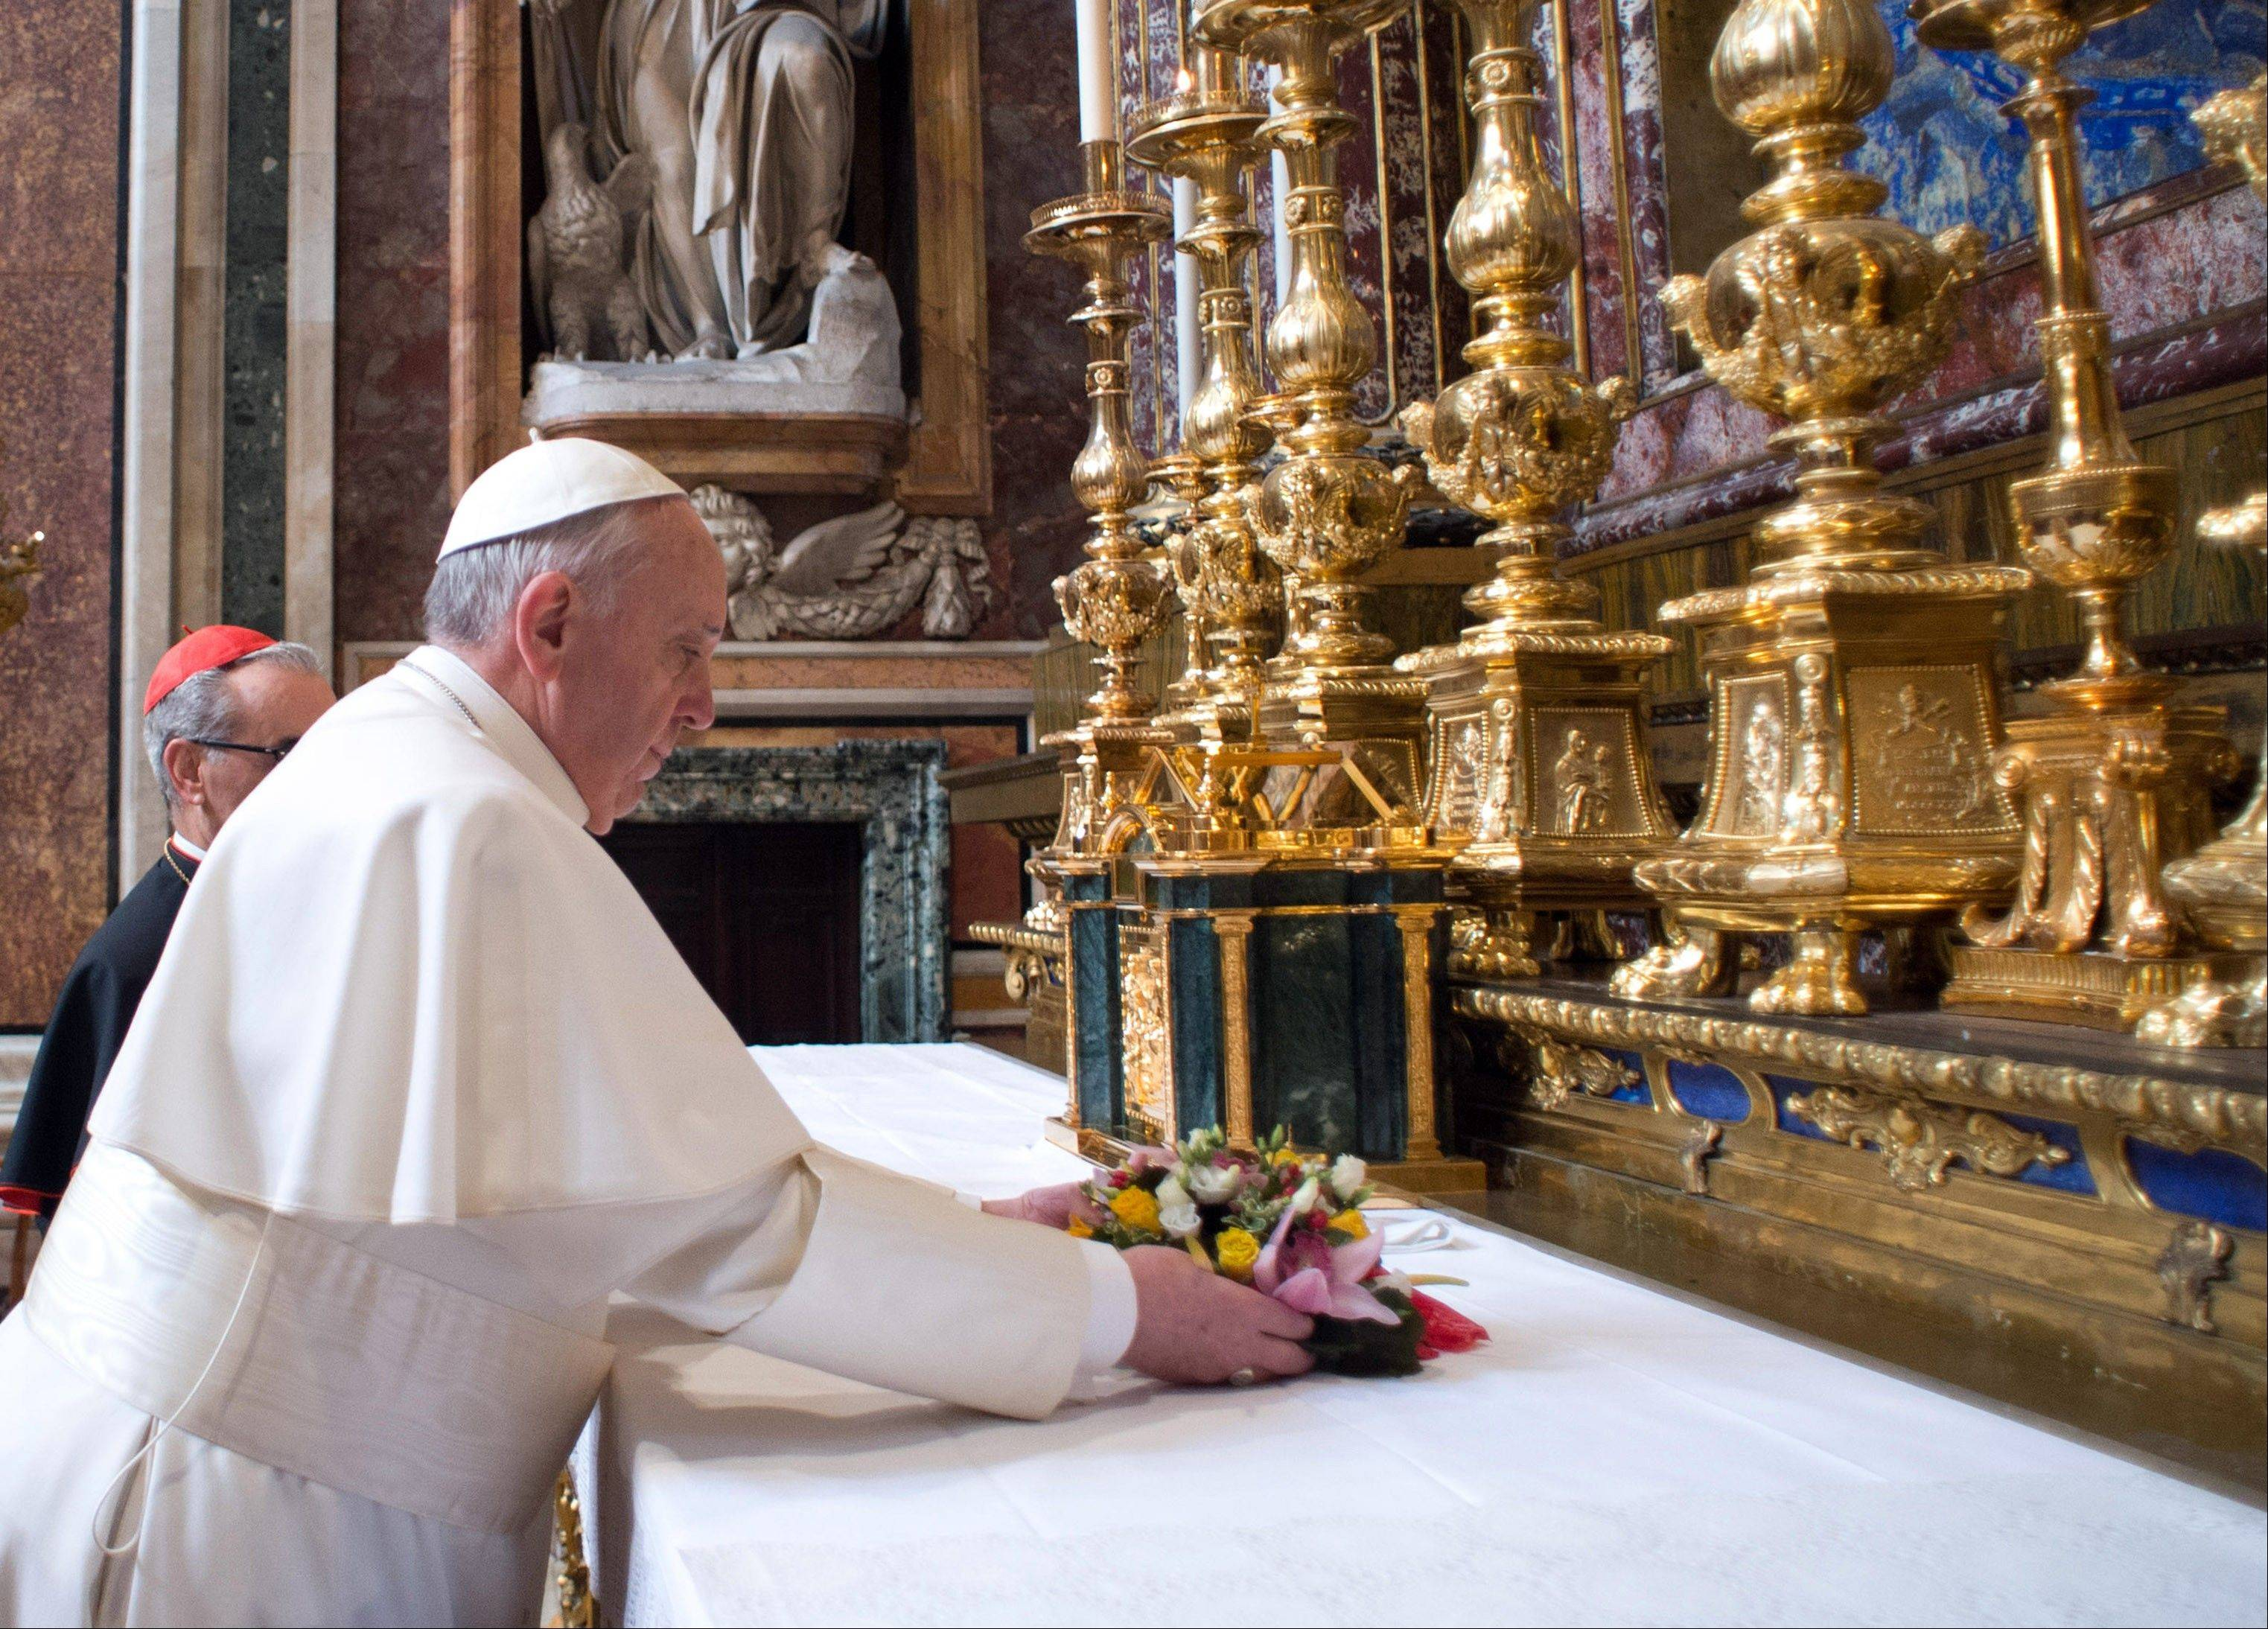 Pope Francis puts flowers on the altar inside St. Mary Major Basilica, in Rome, Thursday, March 14, 2013. Pope Francis opened his first morning as pontiff by praying Thursday at Rome's main basilica dedicated to the Virgin Mary.